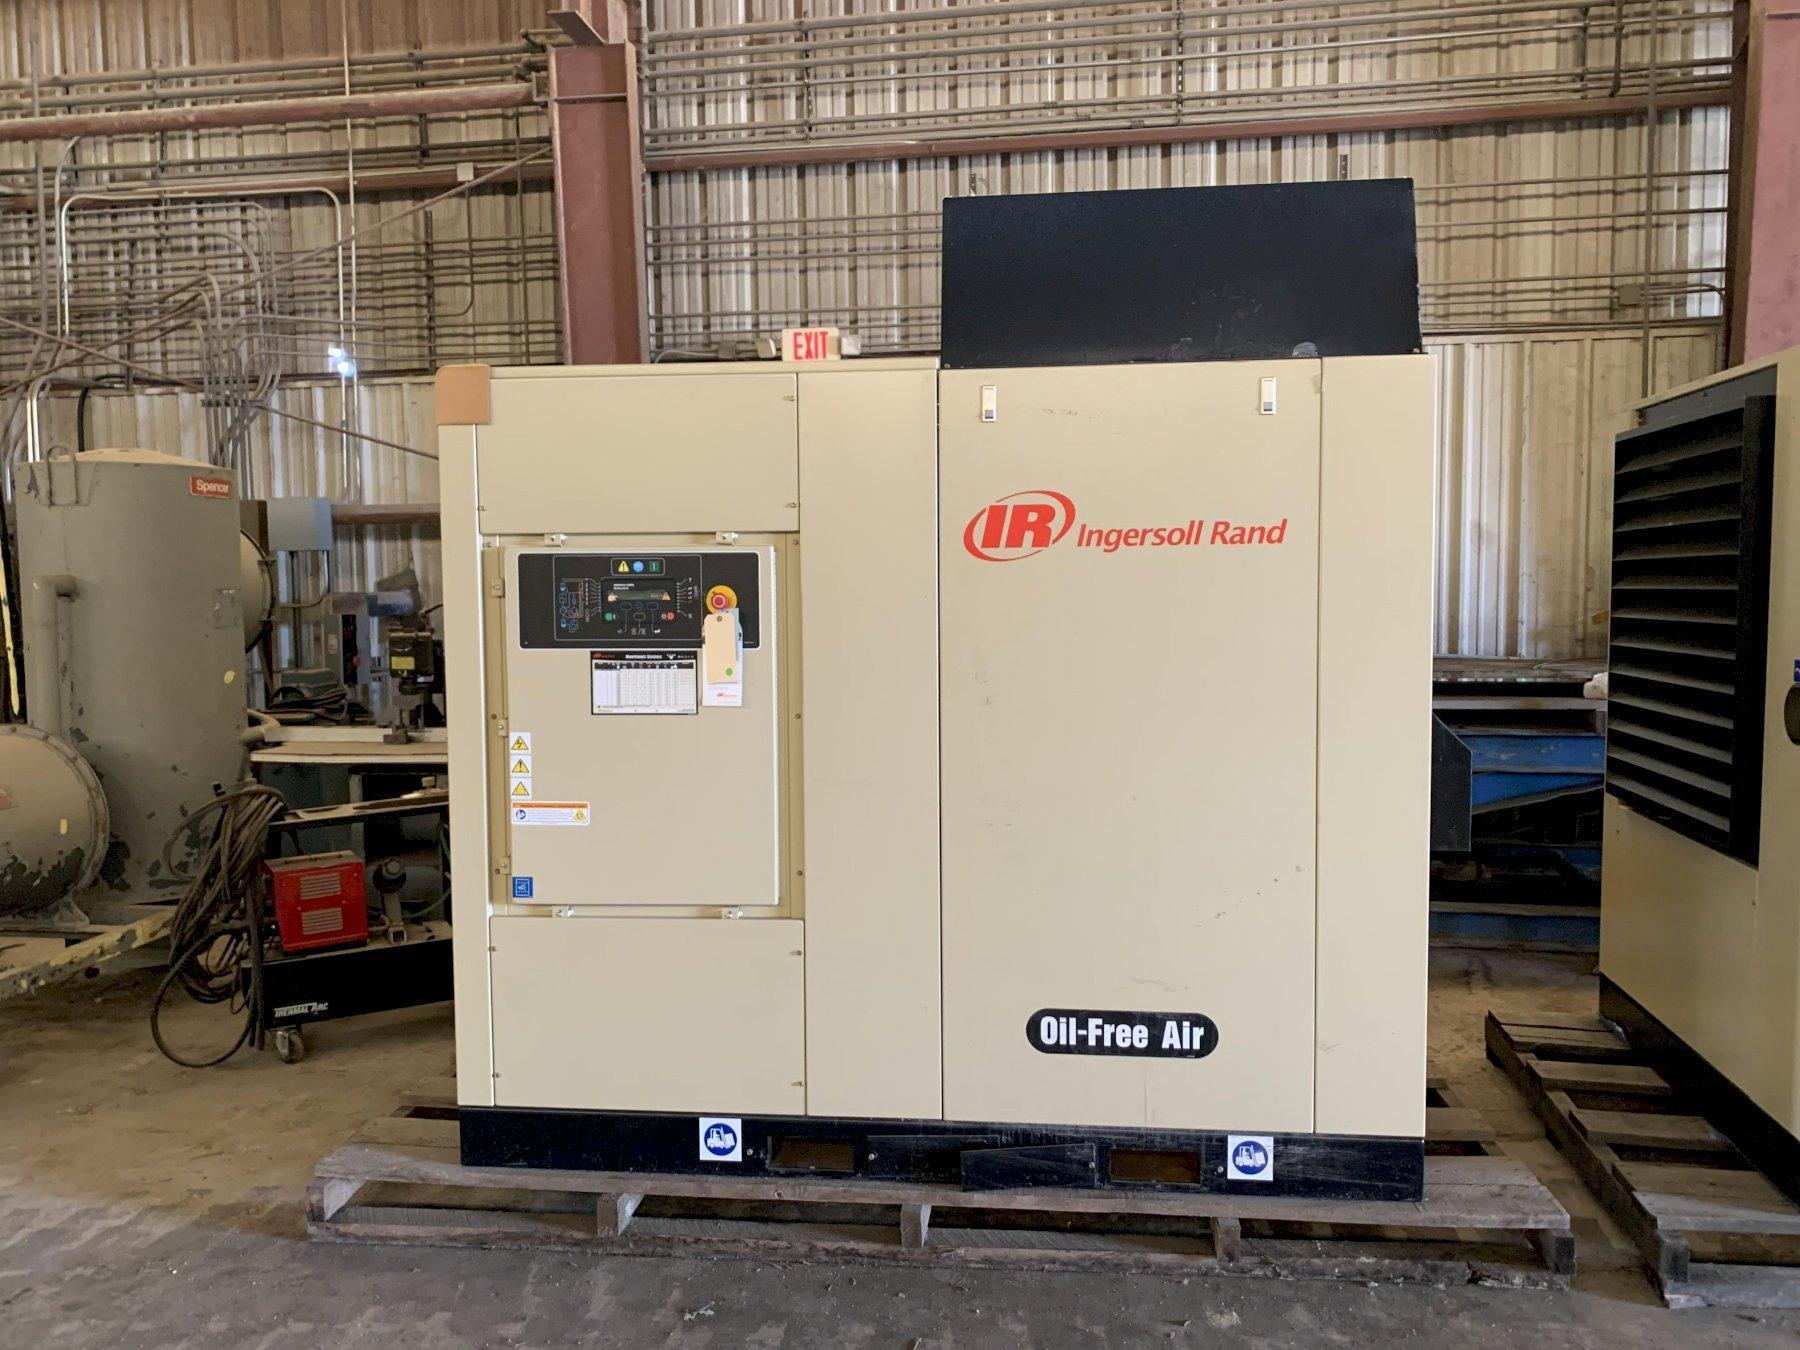 NEVER USED, 2016 INGERSOLL-RAND 3PH ELECTRICAL AIR COMPRESSOR